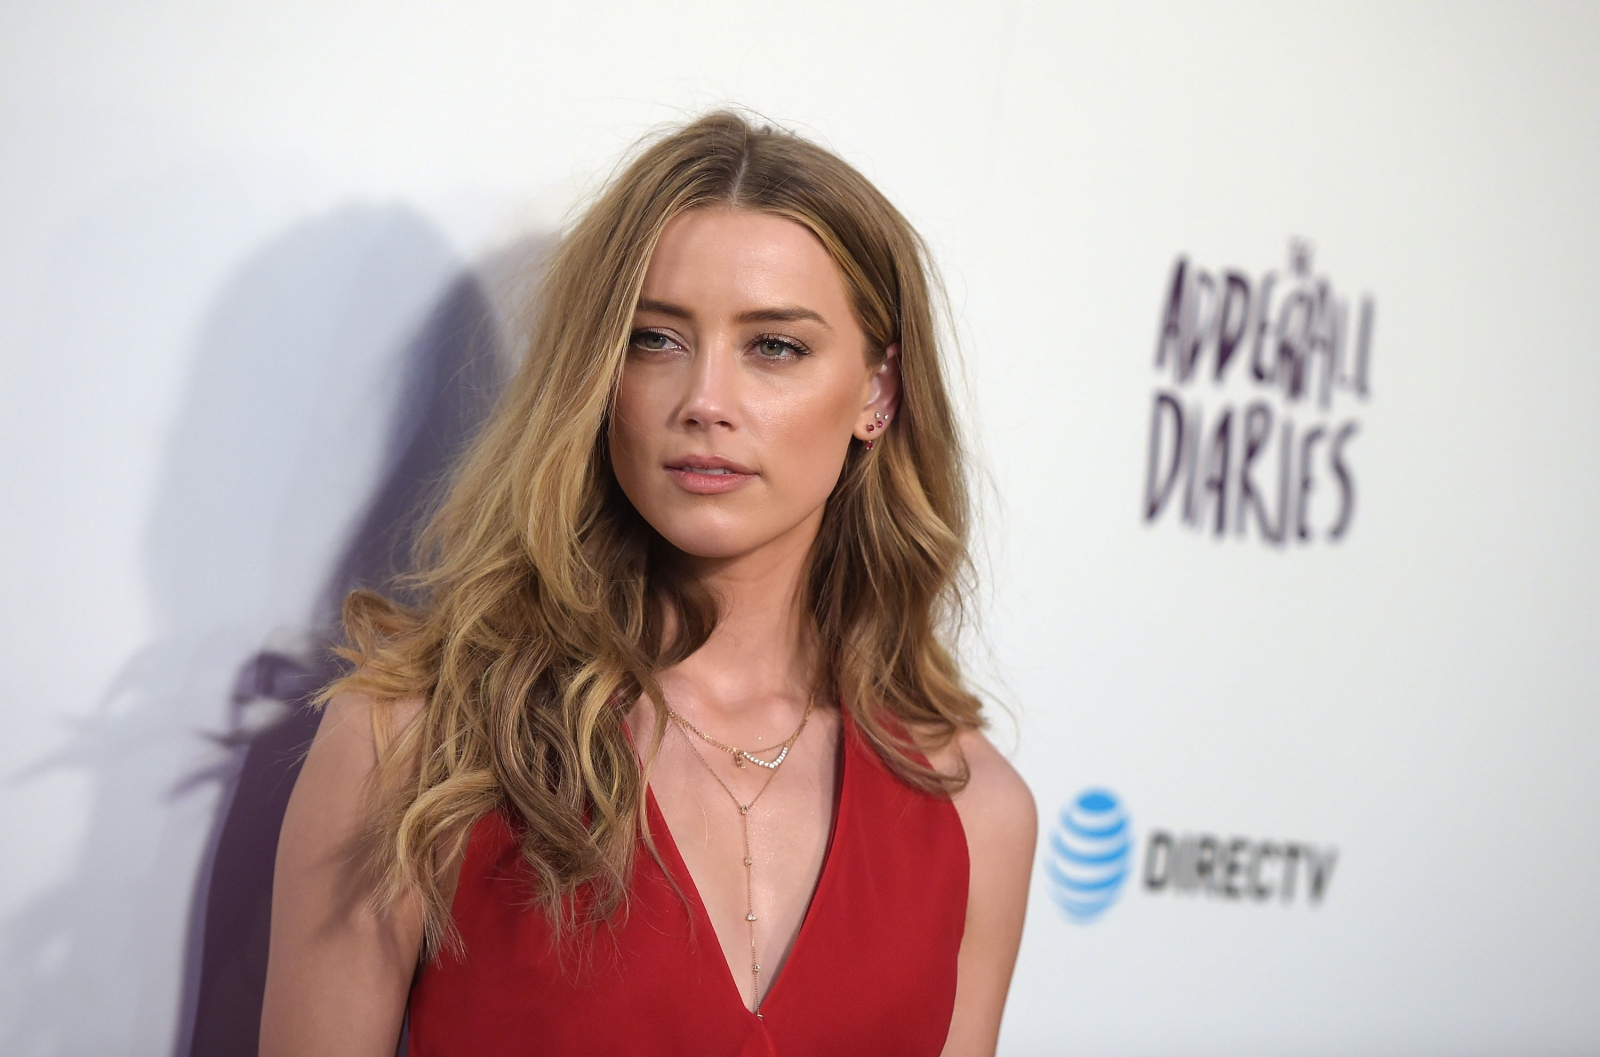 Smashes Wine Glass In Drunken Rage; Amber Heard Denies Leaking It